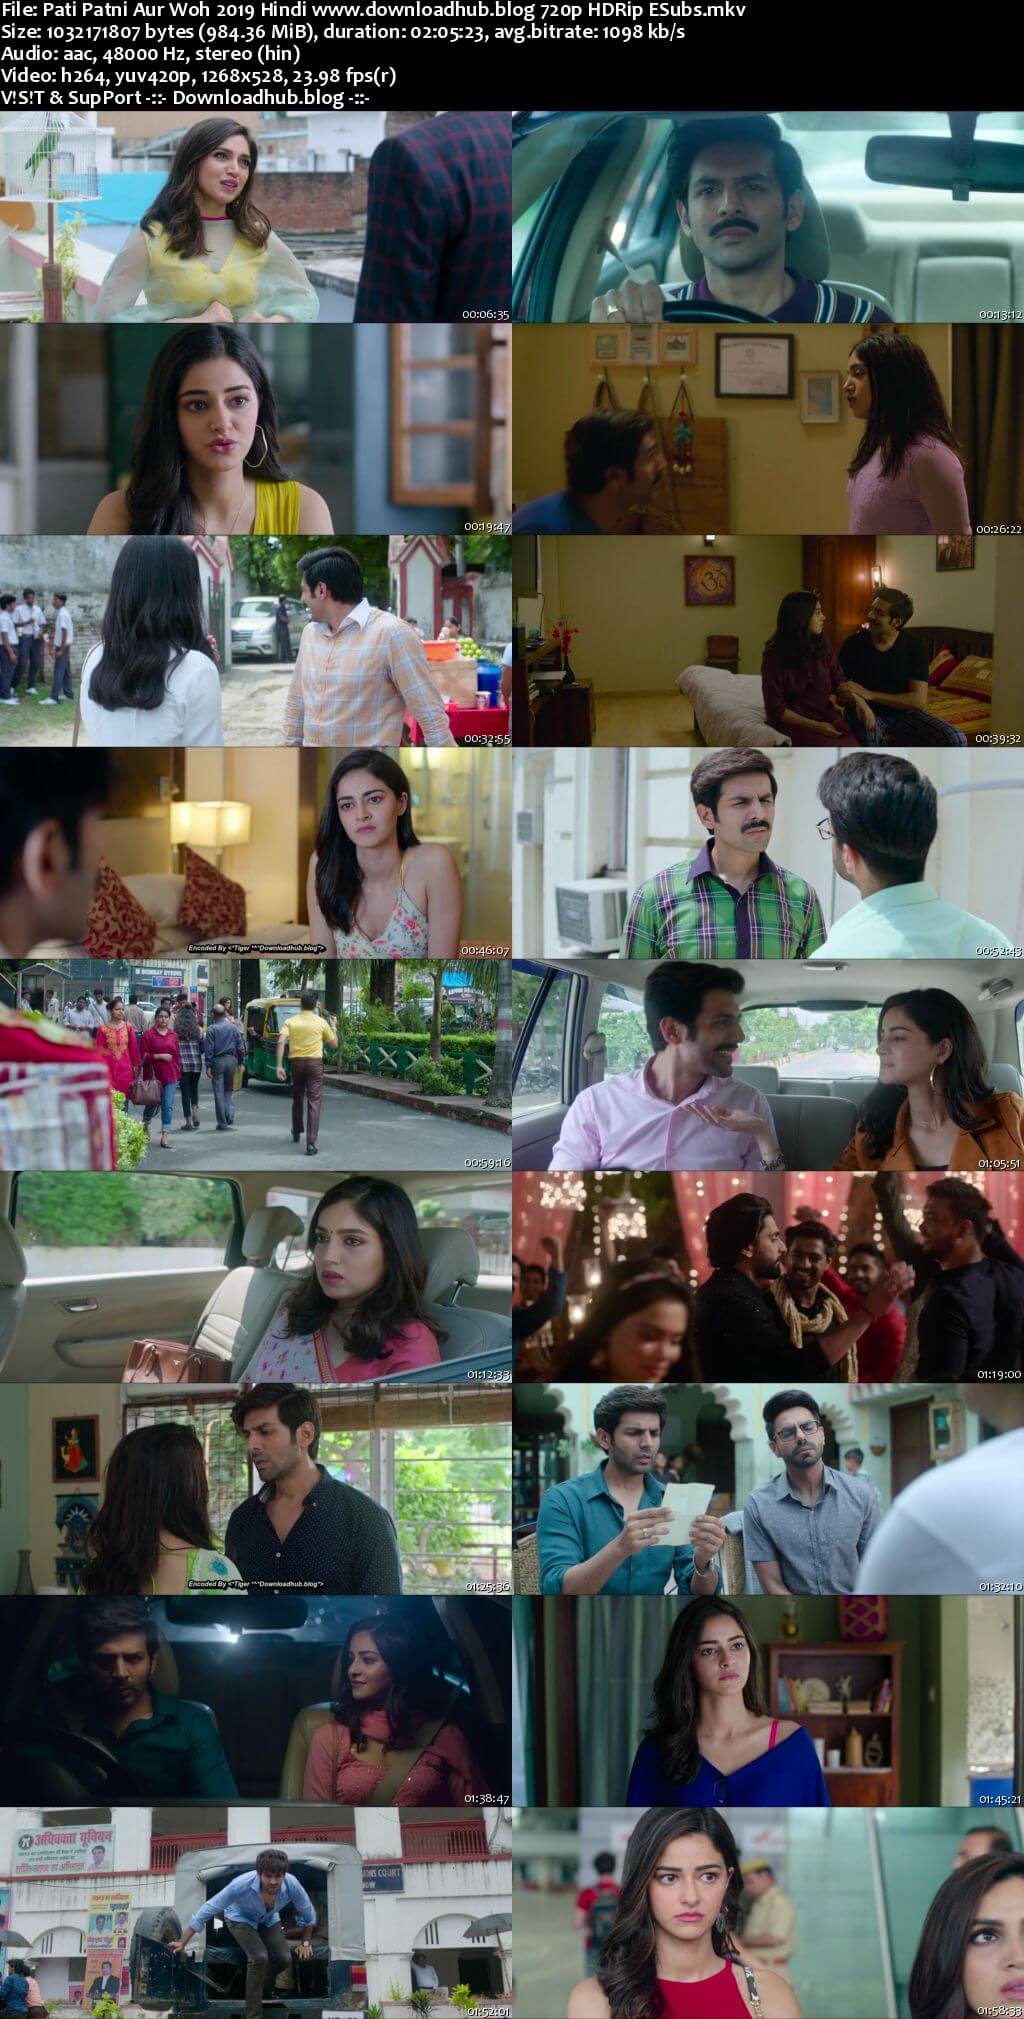 Pati Patni Aur Woh 2019 Hindi 720p HDRip ESubs